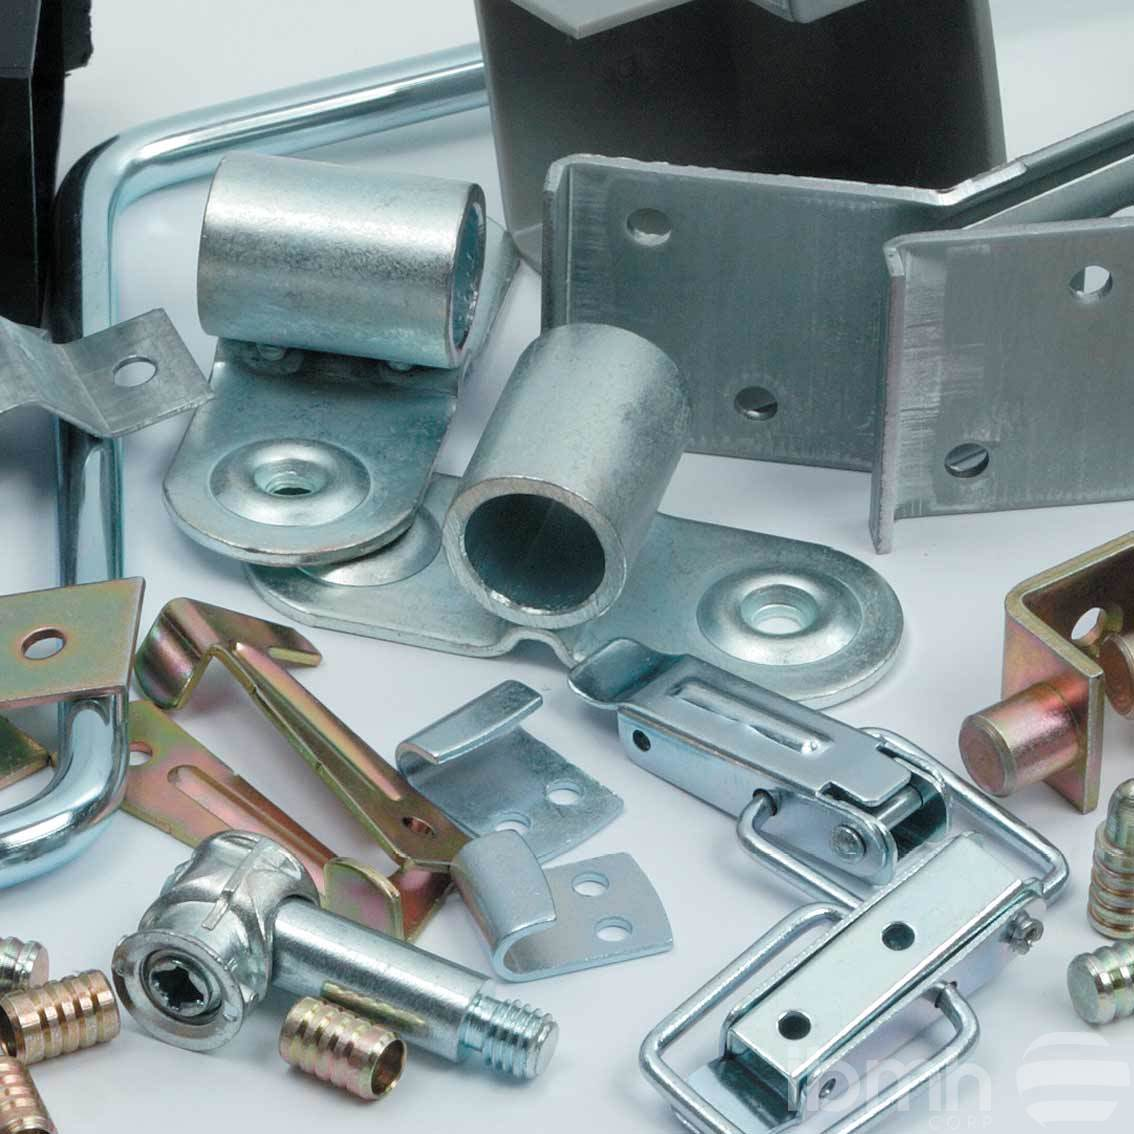 IMPORT FROM CHINA:China Table Hardware China Table Fittings Table Components Parts of Tables Fittings for Extension Table Furniture Hardware Furniture Fittings​ Furniture Components Parts of Furniture Table Hardware  Table Fittings